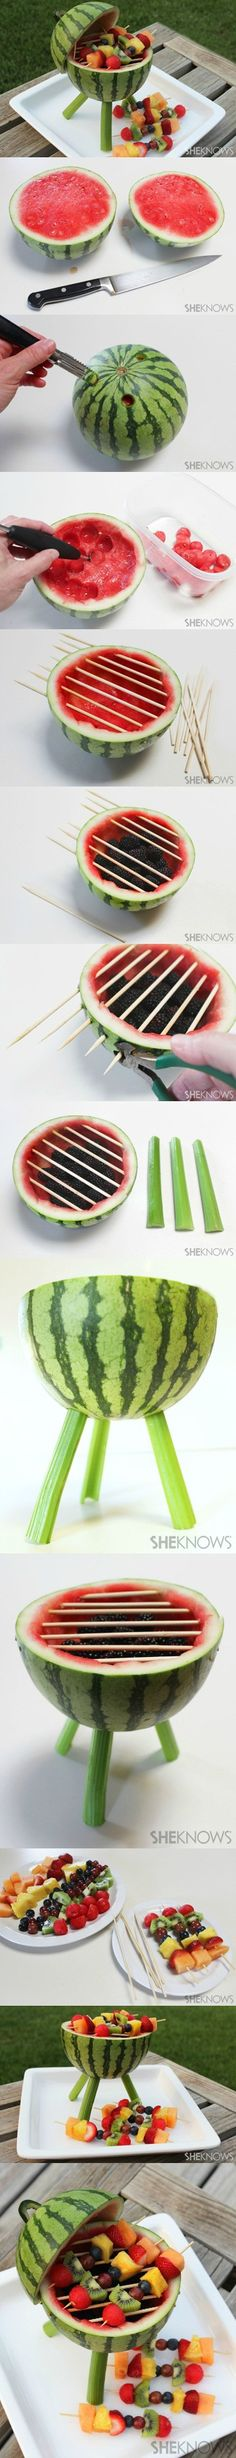 DIY Watermelon Grill With Fruit Kabobs